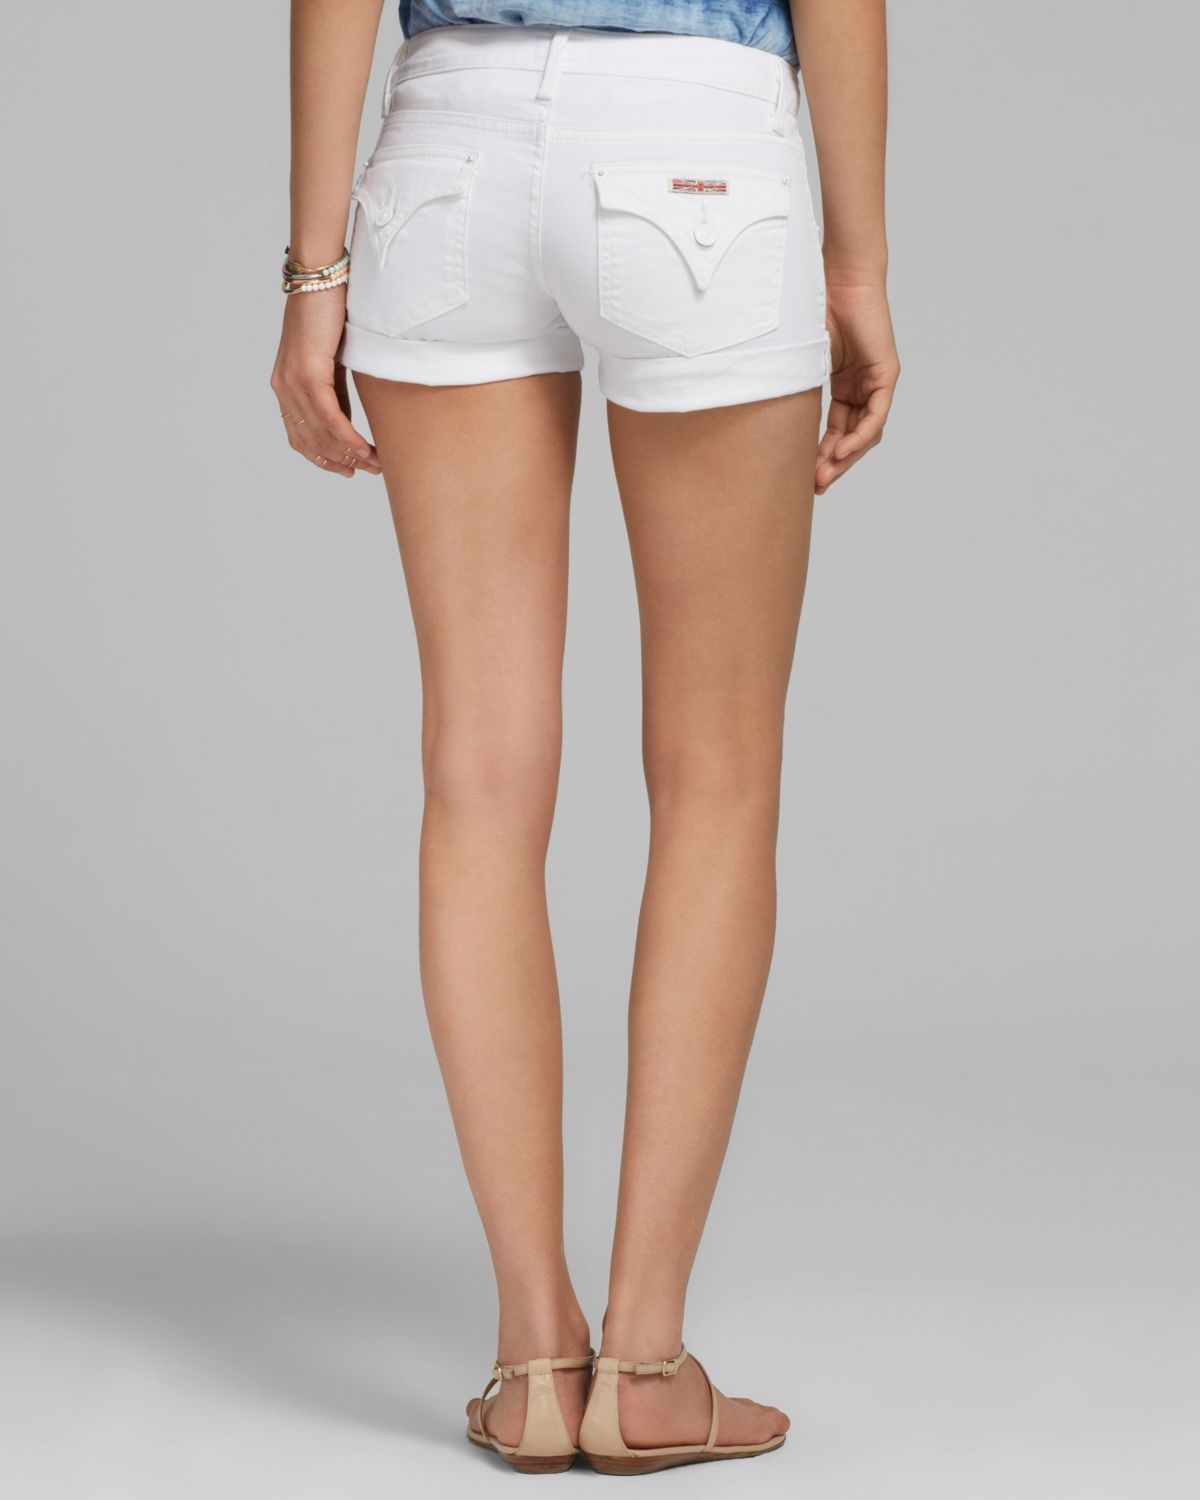 Hudson jeans Hampton Cuffed Shorts in White | Lyst